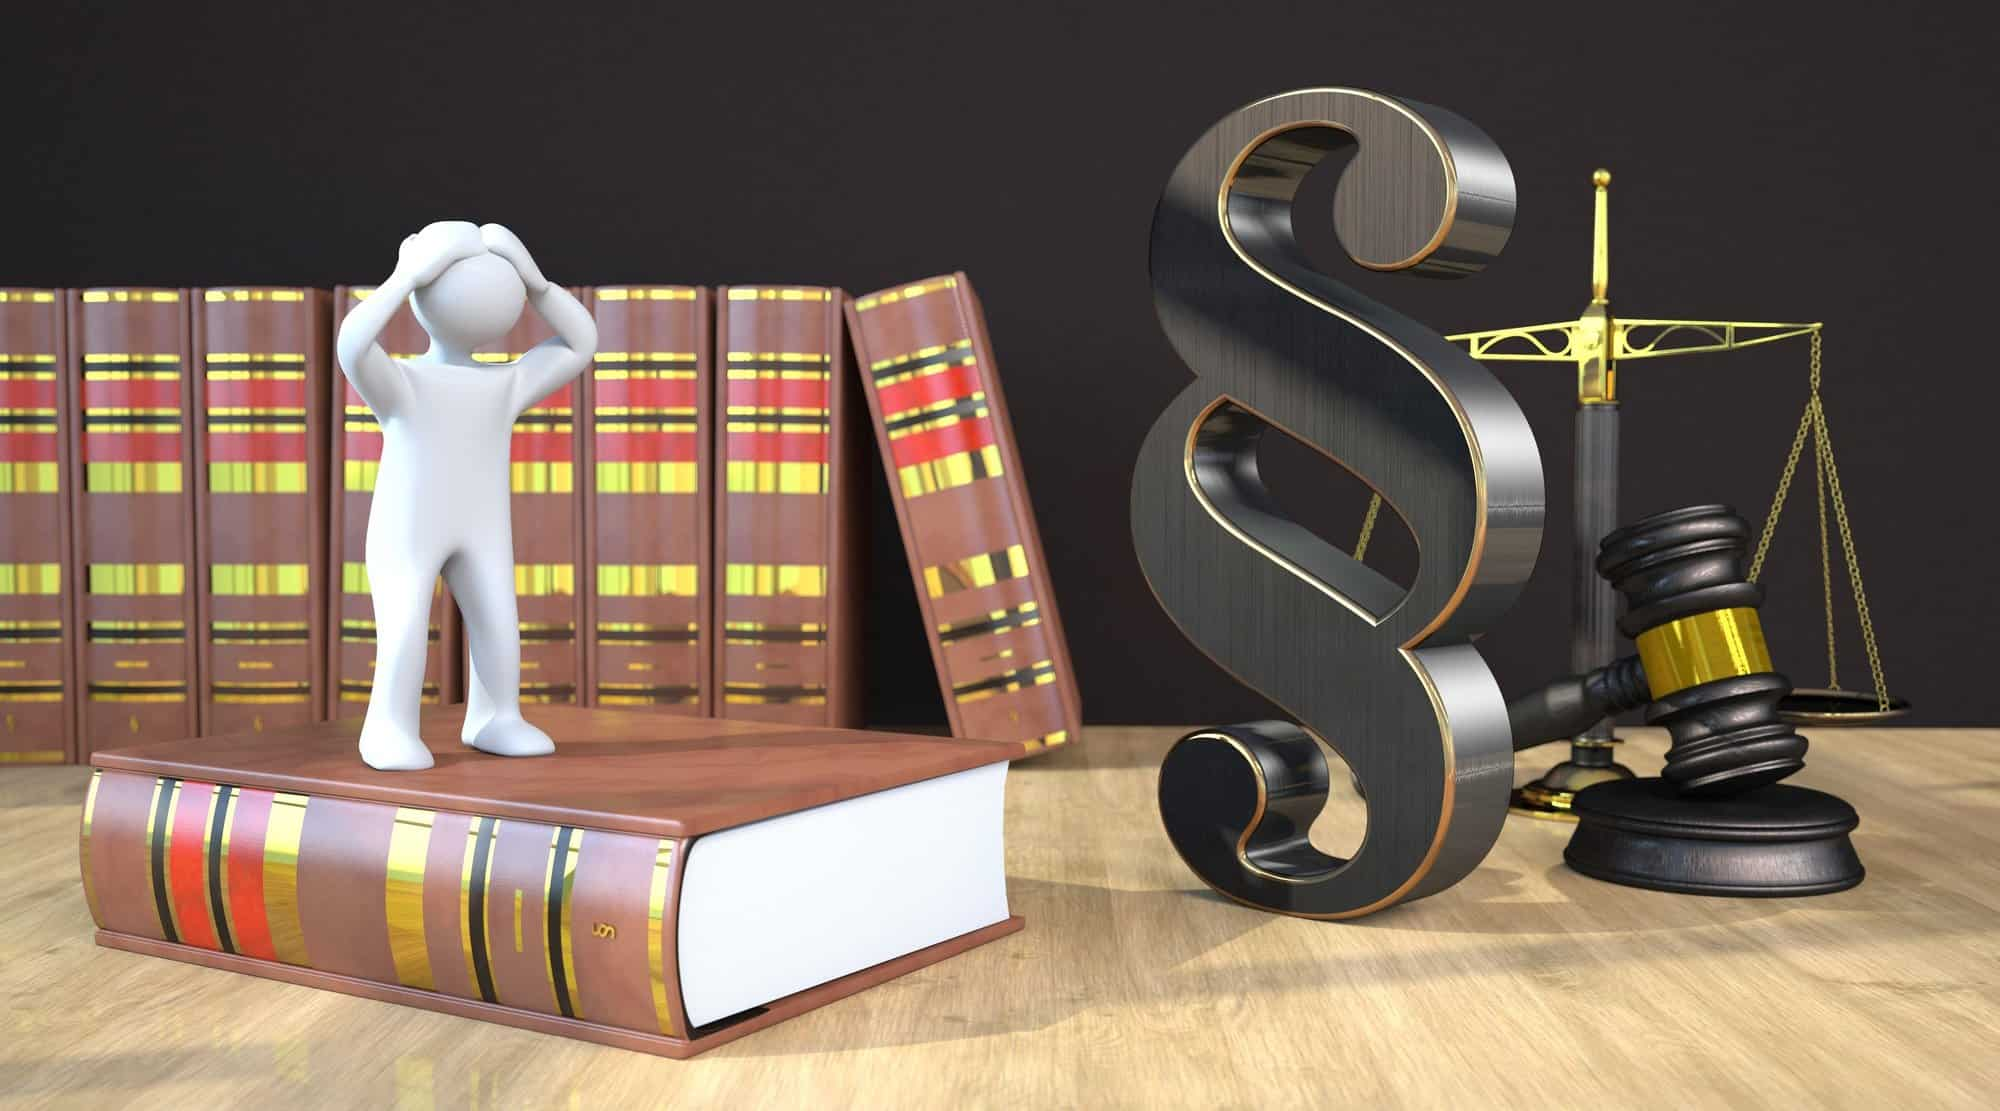 Desperate Manikin Desperate manikin on the law book on the table with a paragraph, scale and gavel. 3d illustration.Desperate manikin on the law book on the table with a paragraph, scale and gavel.